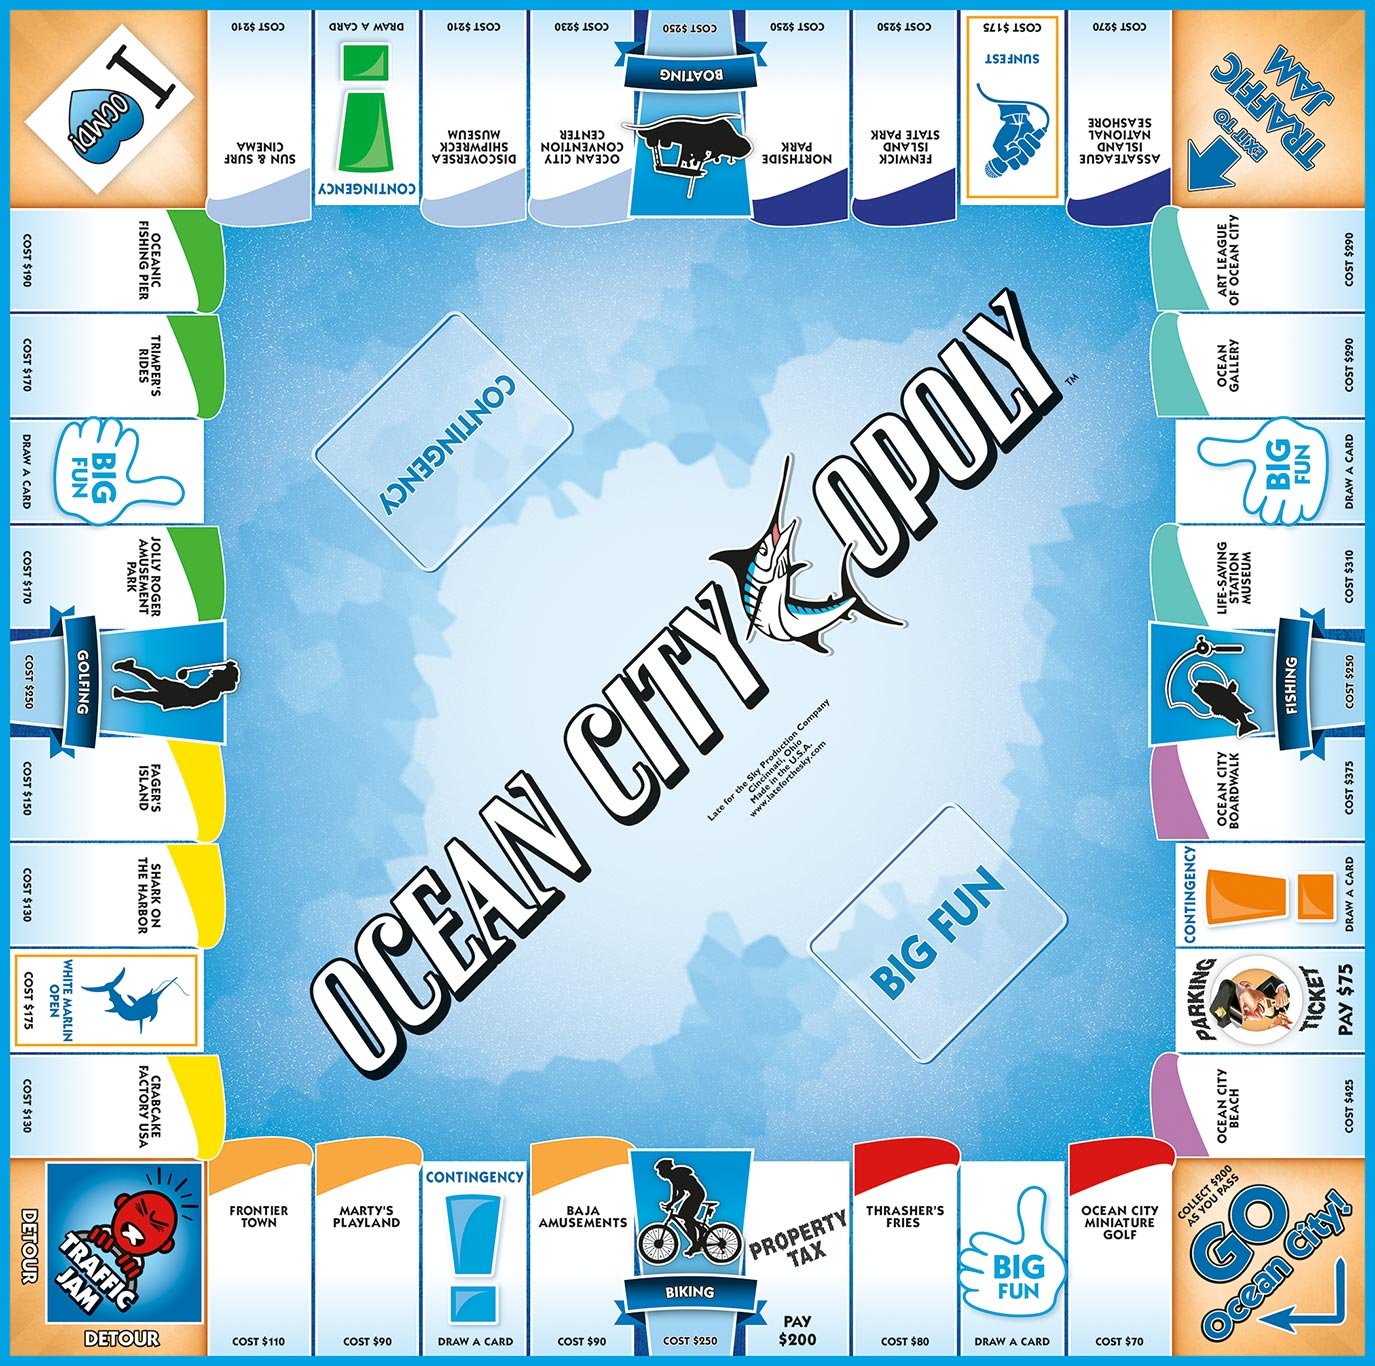 OCEAN CITY-OPOLY Board Game